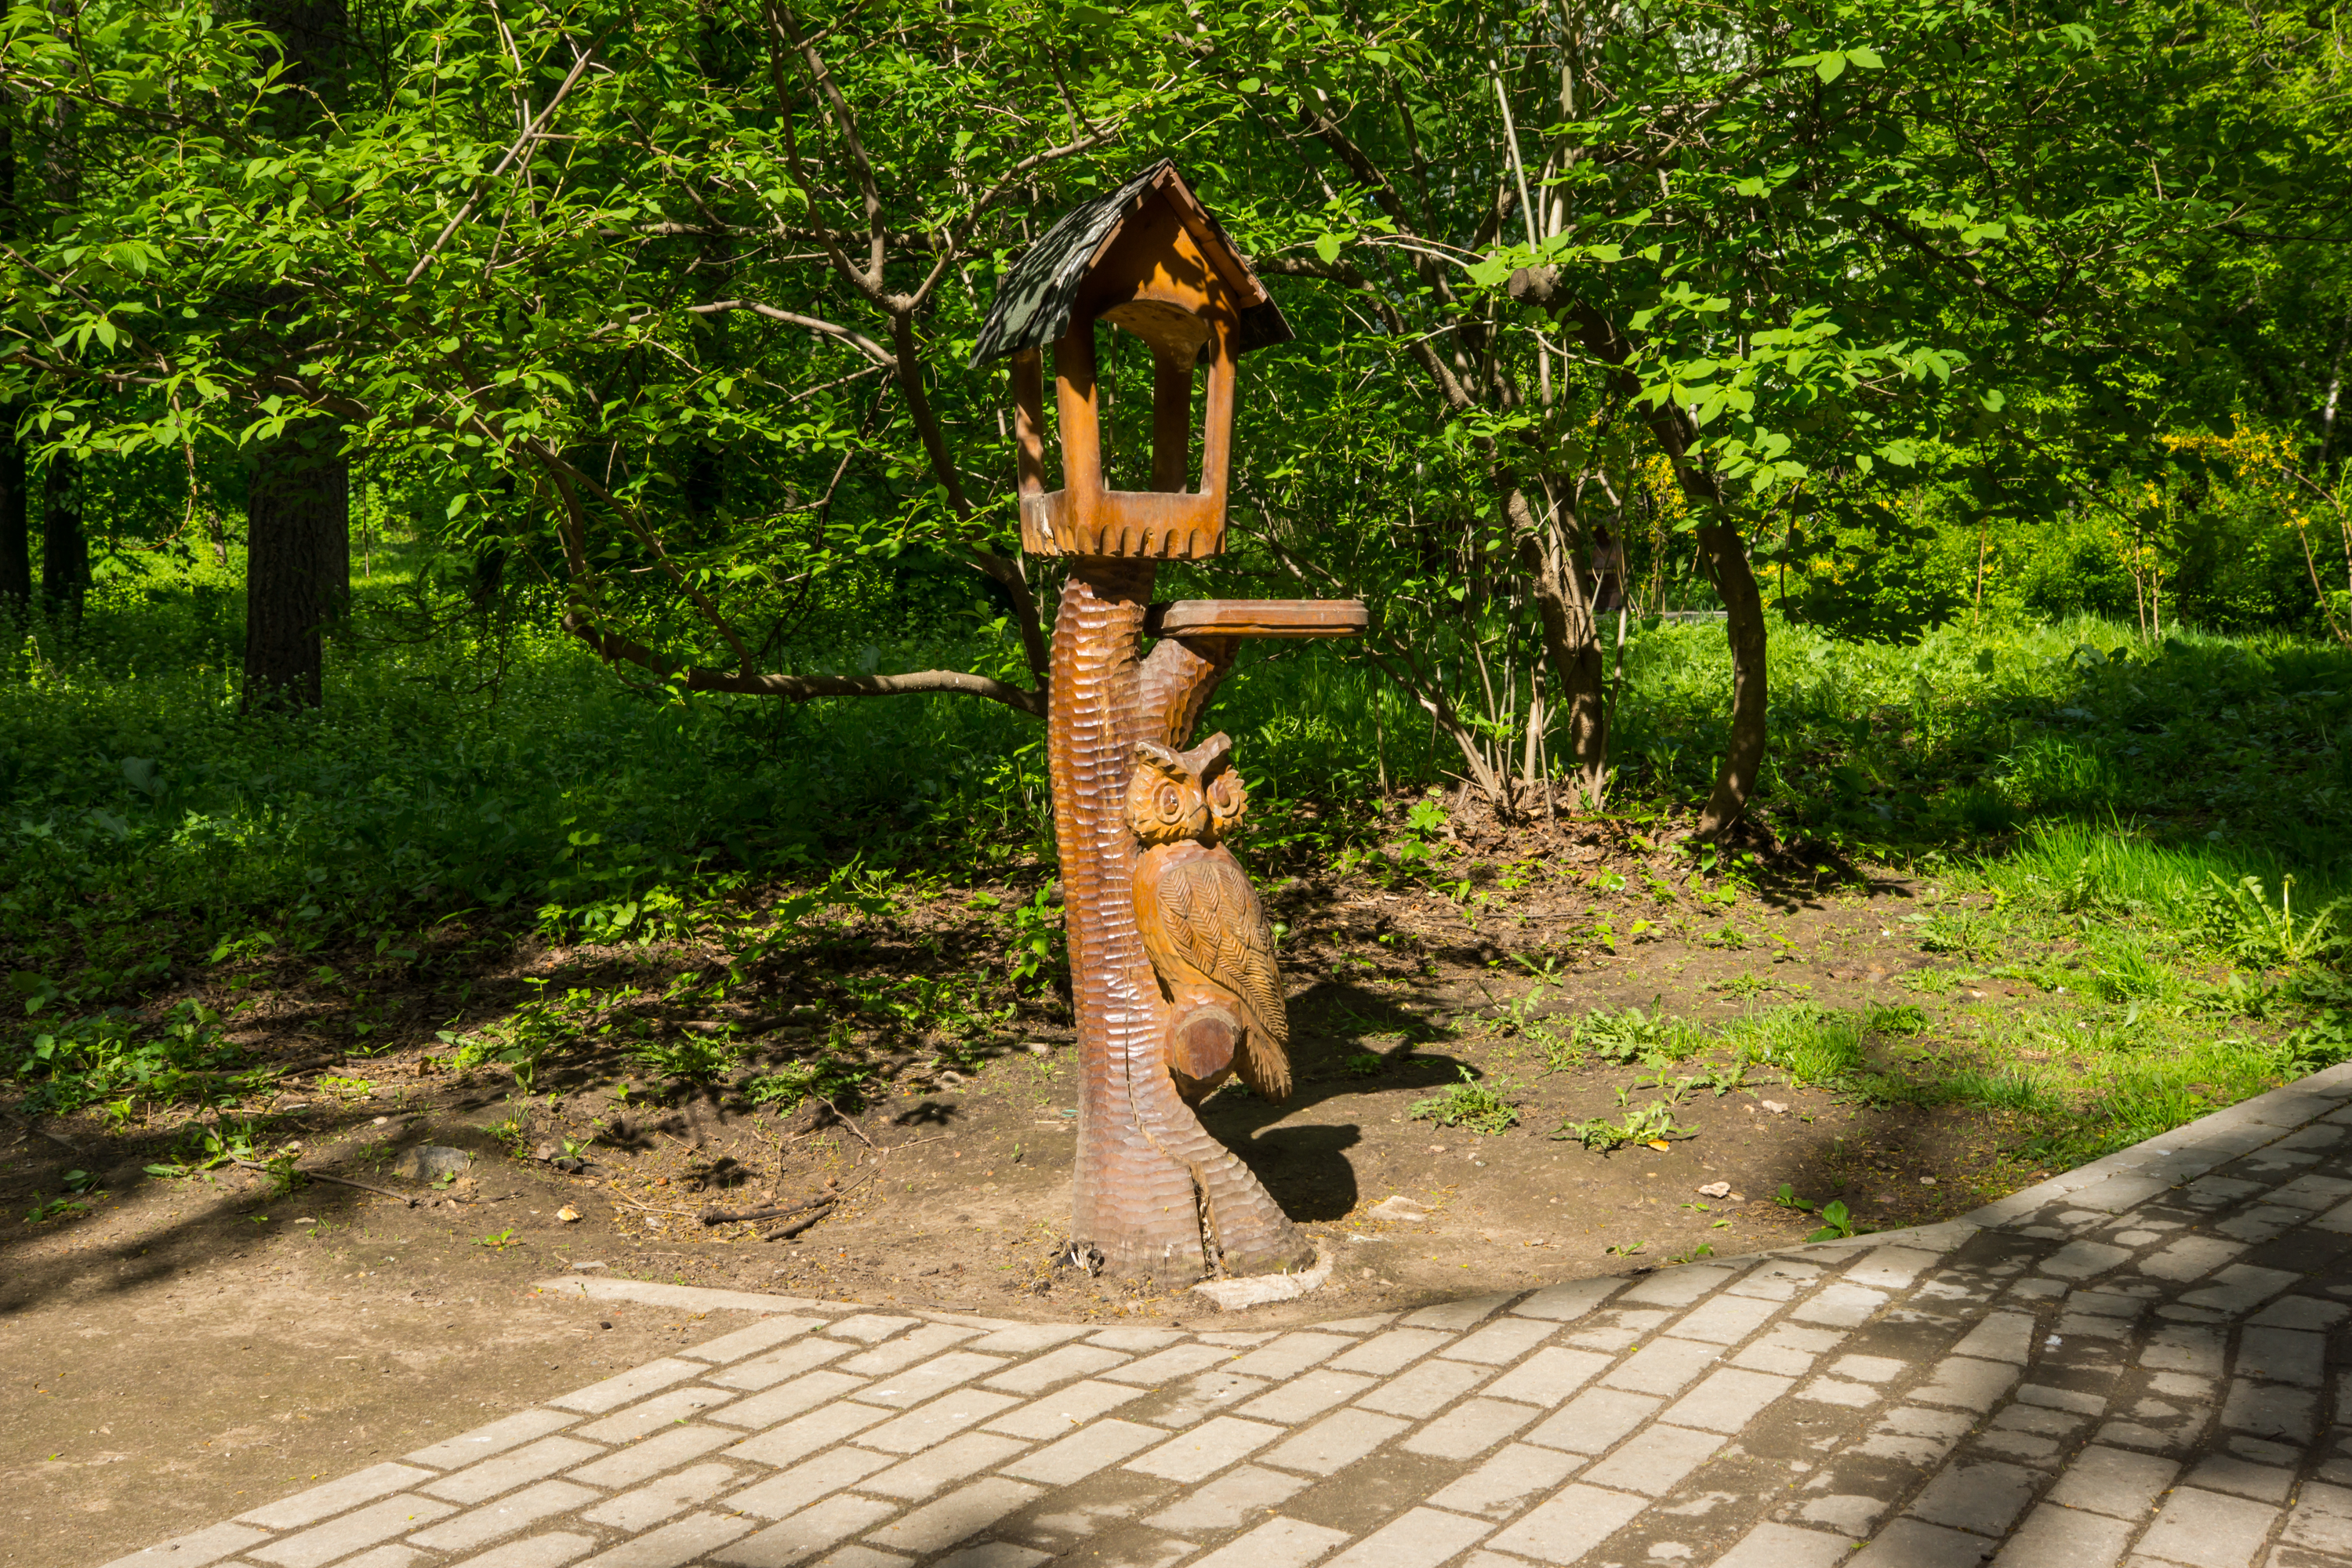 wooden sculptures in the Park